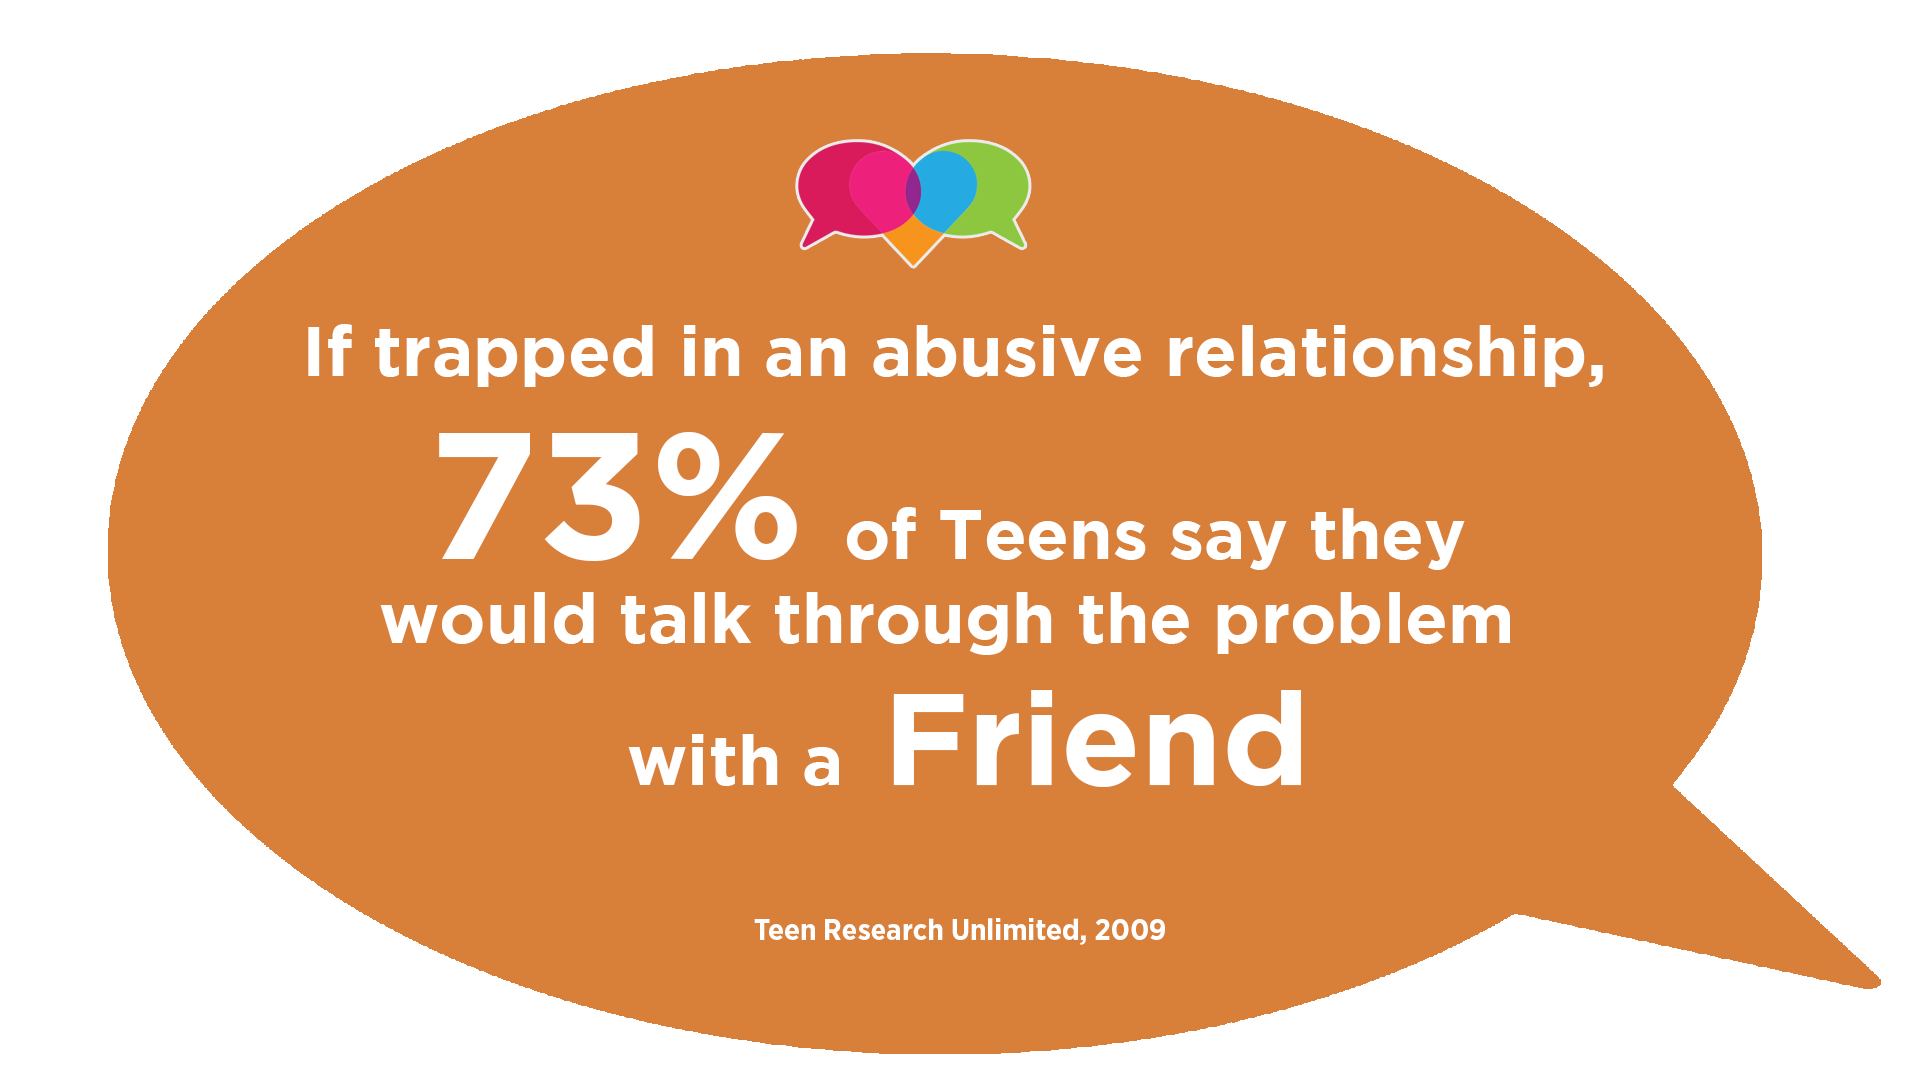 If trapped in and abusive relationship 73%of teens say they would talk through the problem with a friend